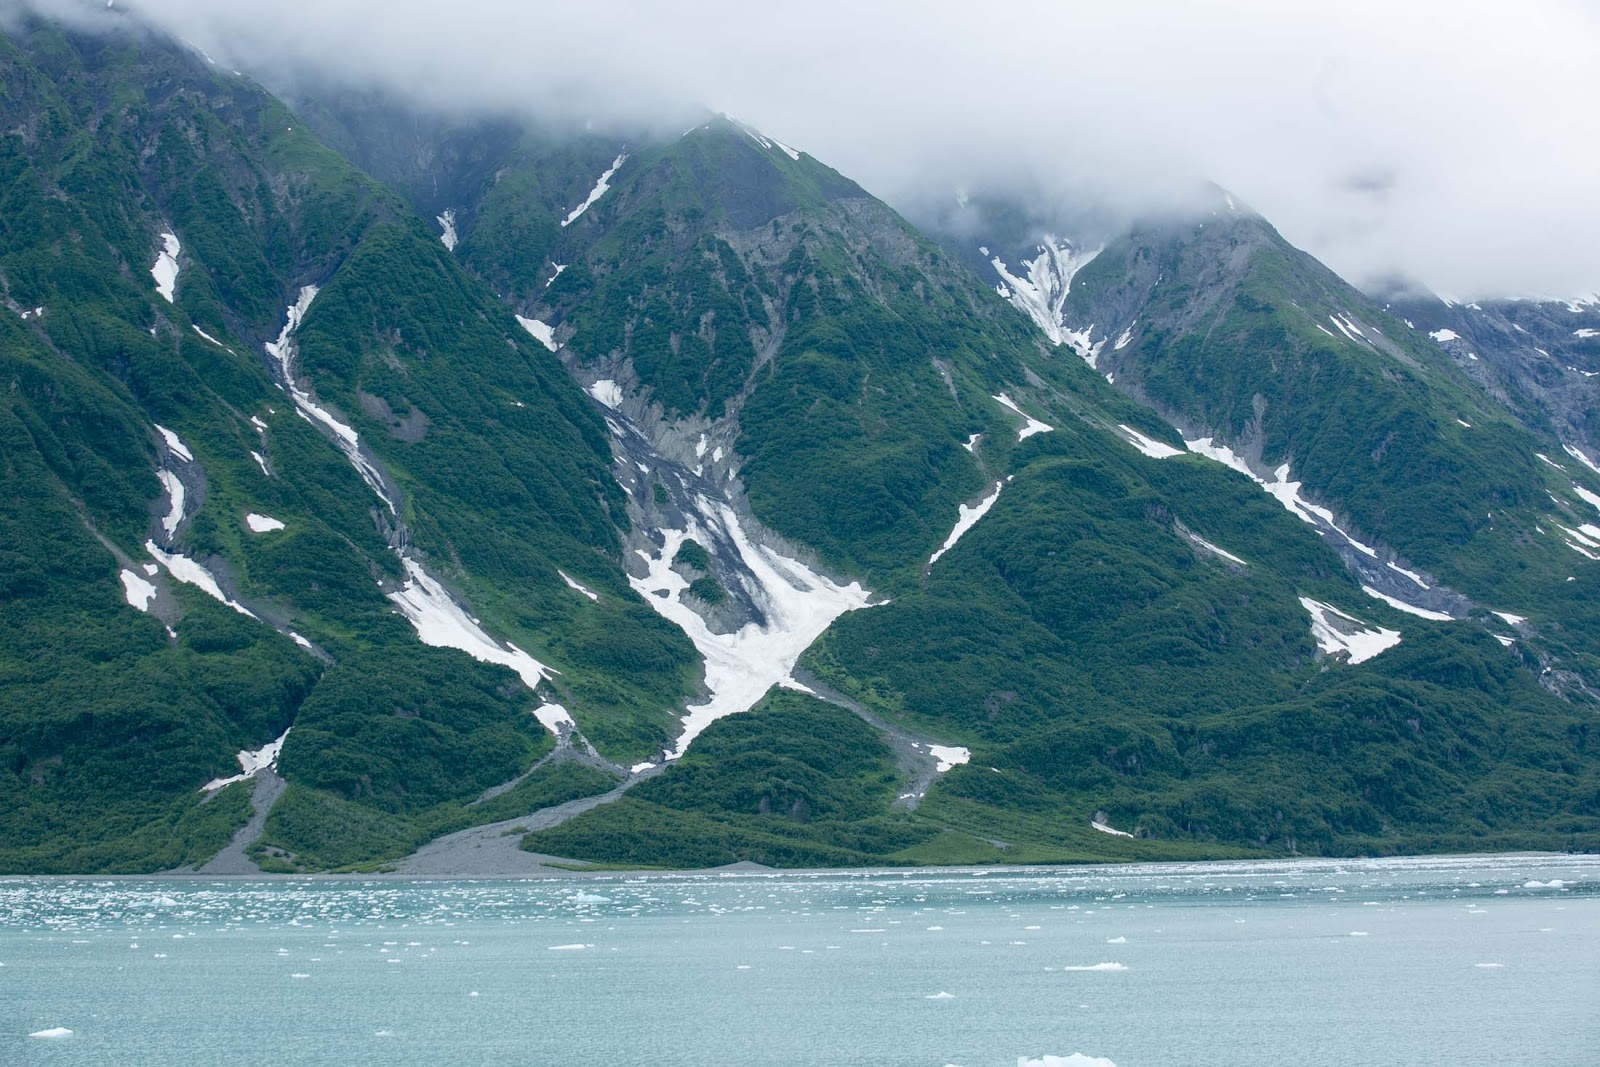 Greenery and snow on Hubbard Glacier